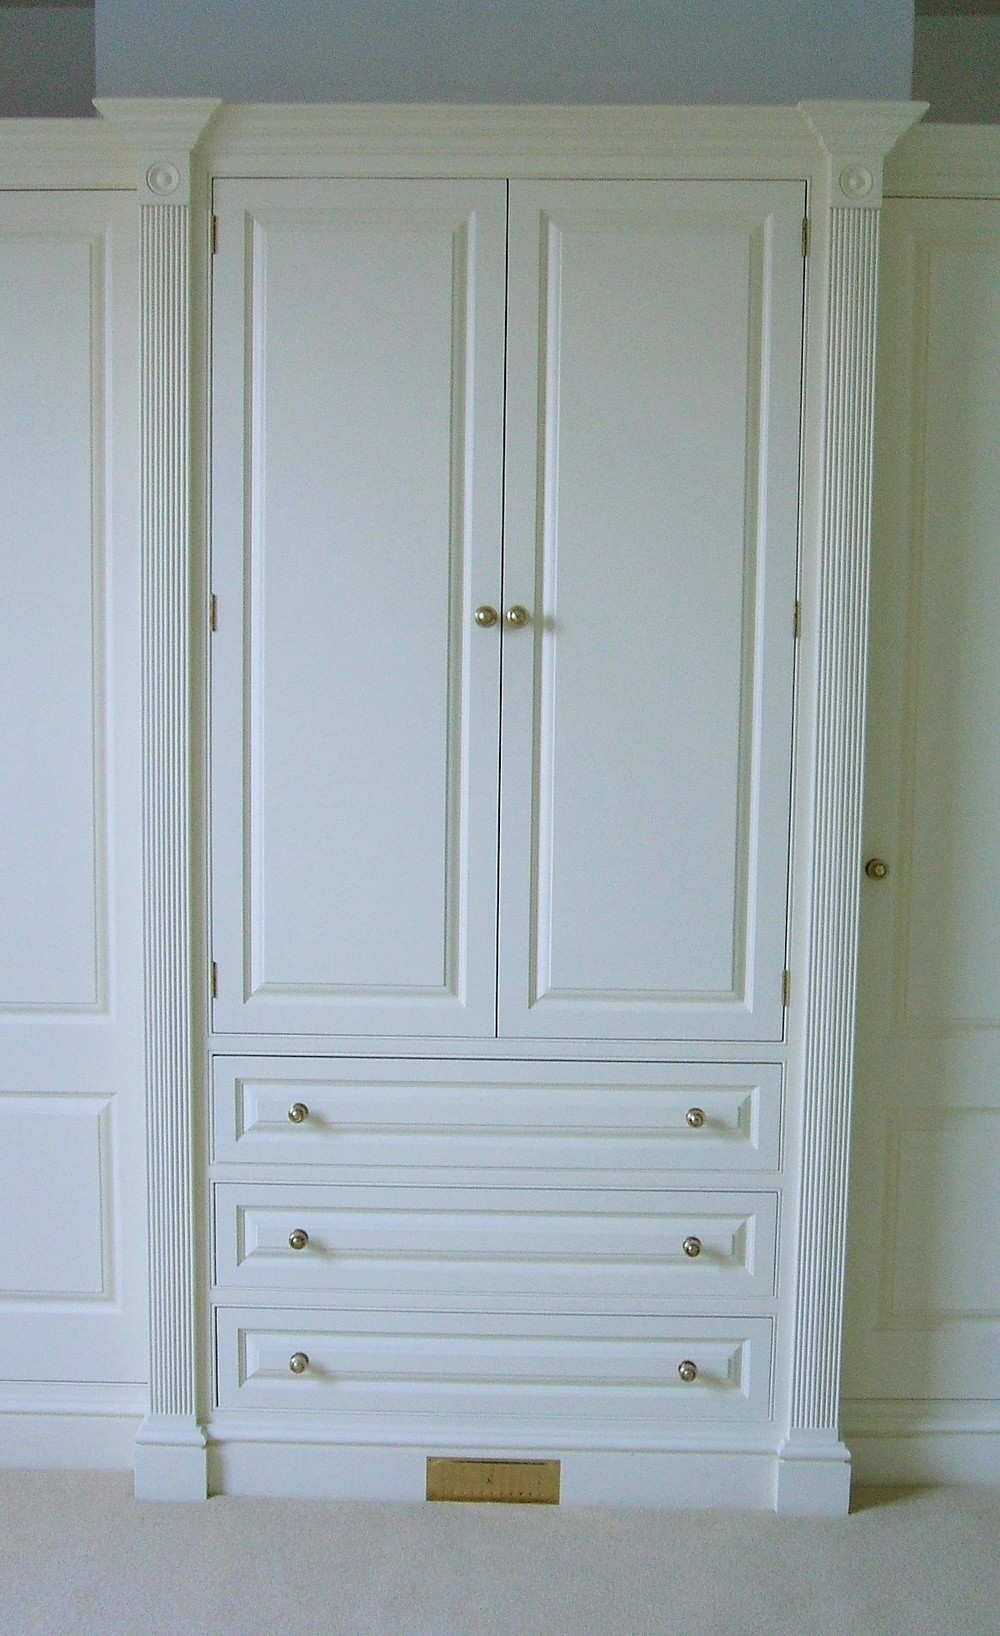 Fitted Wardrobes   Featured above are custom-made double wardrobes finished, paintedfinish in Farrow and Ball's New White and completed withtraditional knob handles and features.    From £1750.